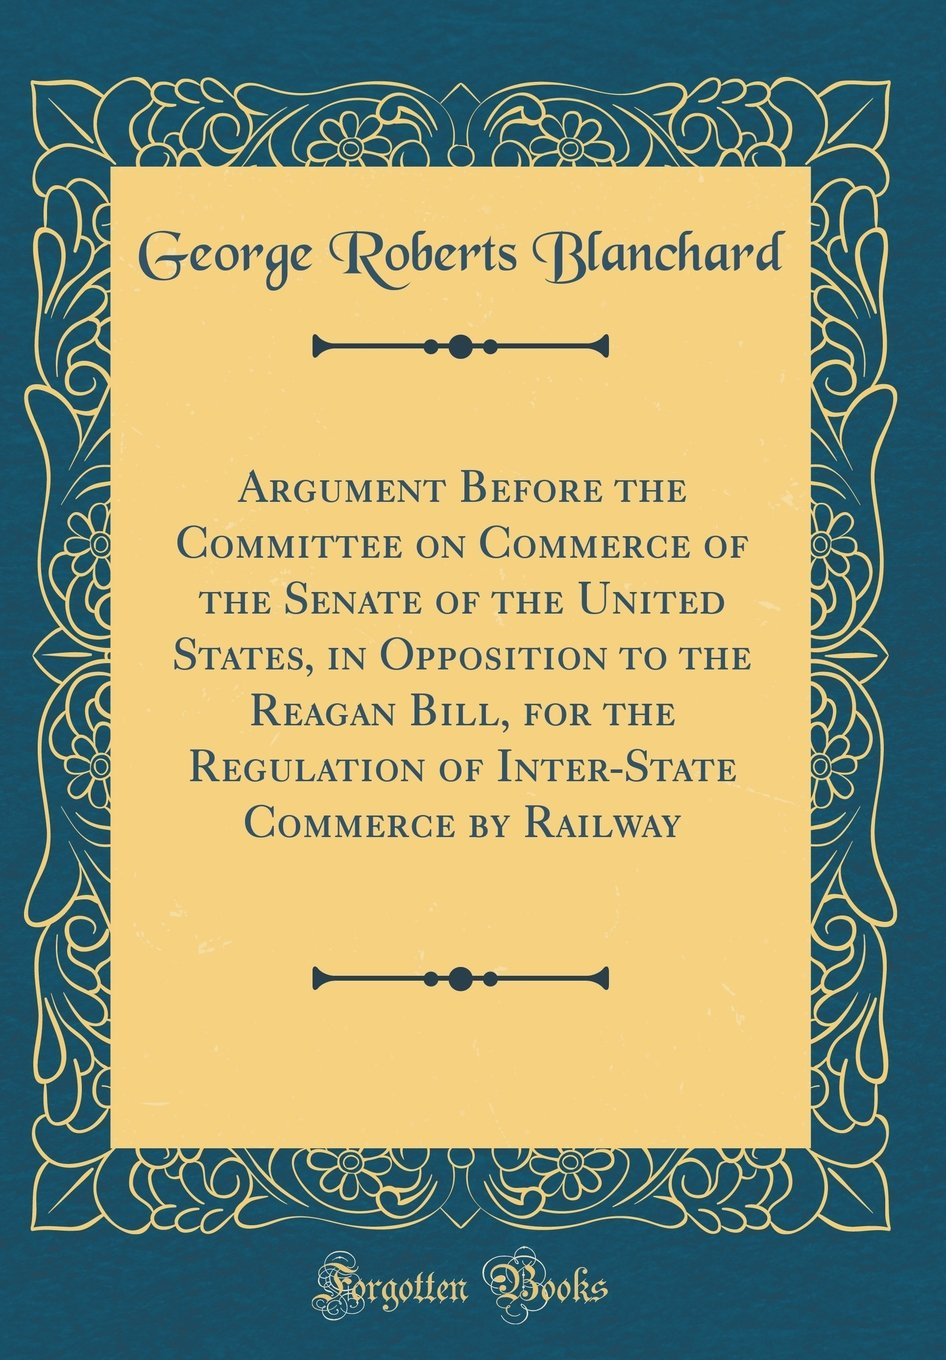 Read Online Argument Before the Committee on Commerce of the Senate of the United States, in Opposition to the Reagan Bill, for the Regulation of Inter-State Commerce by Railway (Classic Reprint) pdf